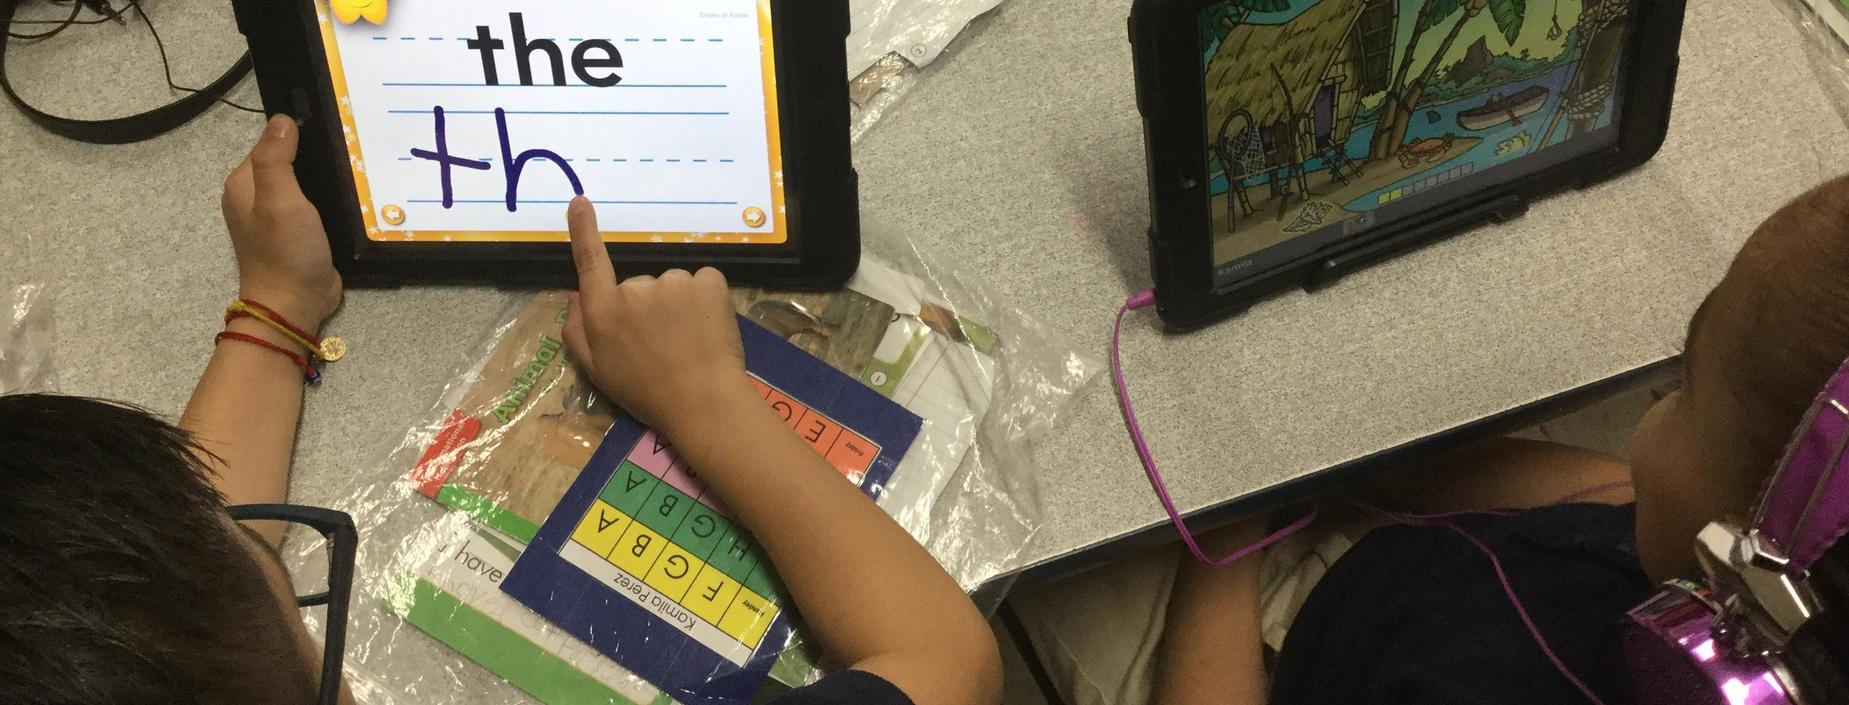 2 students using iPads for learning activities.